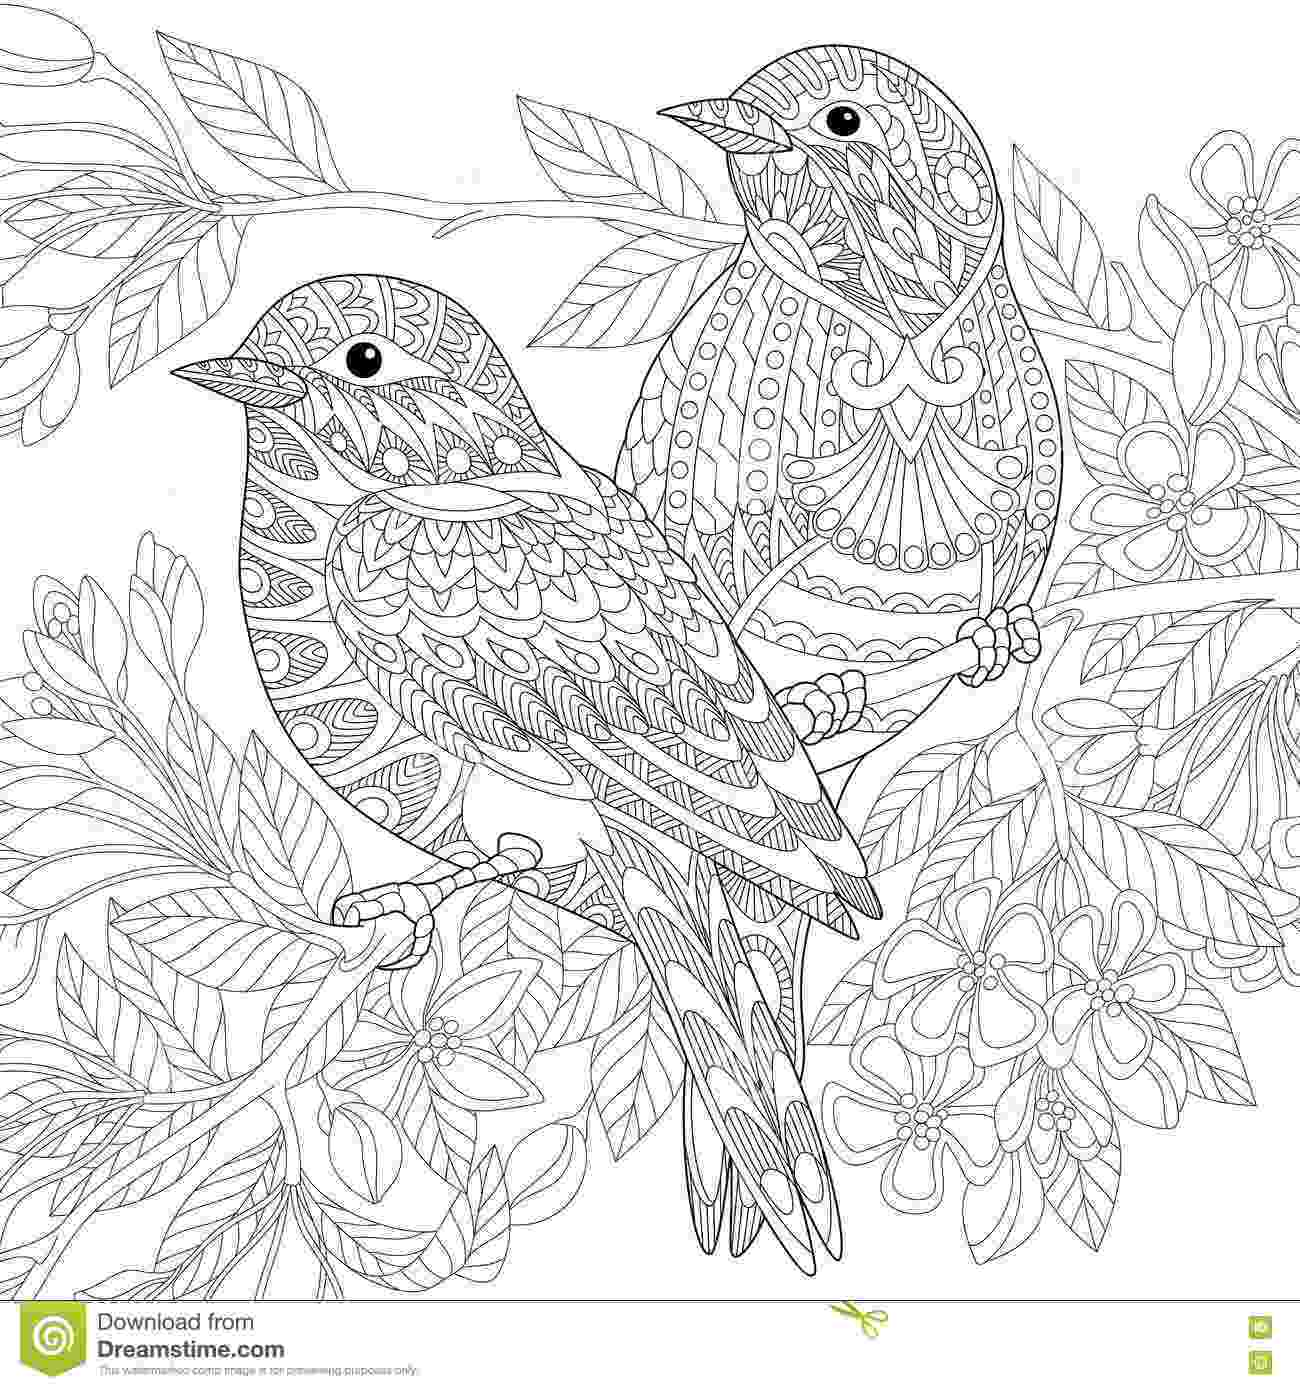 colouring for adults lize beekman pin by brenda mendenhall on art i like pinterest for colouring adults lize beekman